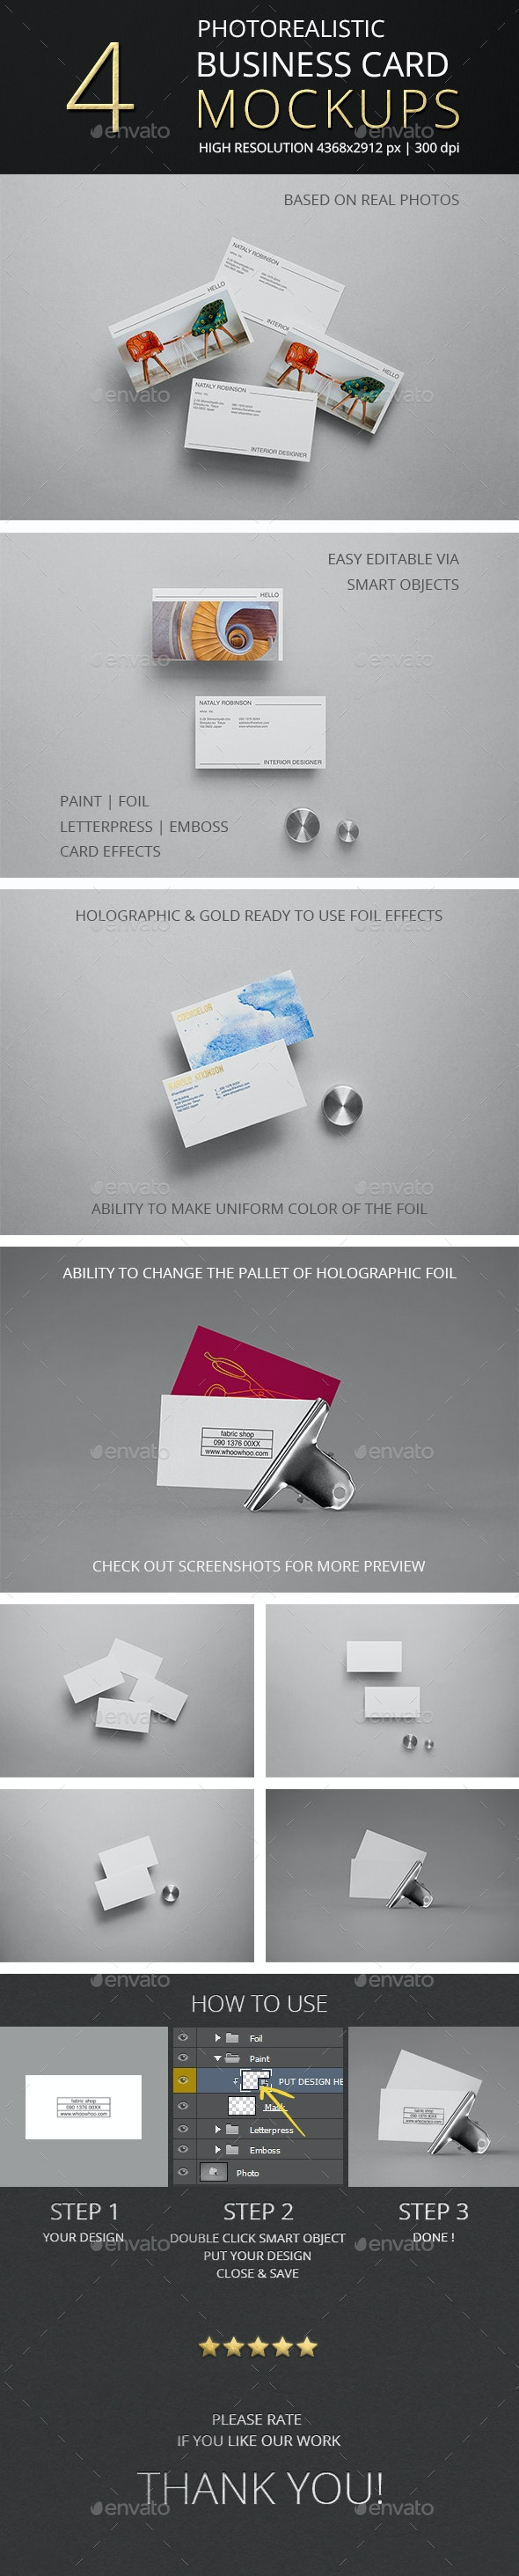 Photorealistic Business Card Mockup Vol 6.0 - Business Cards Print